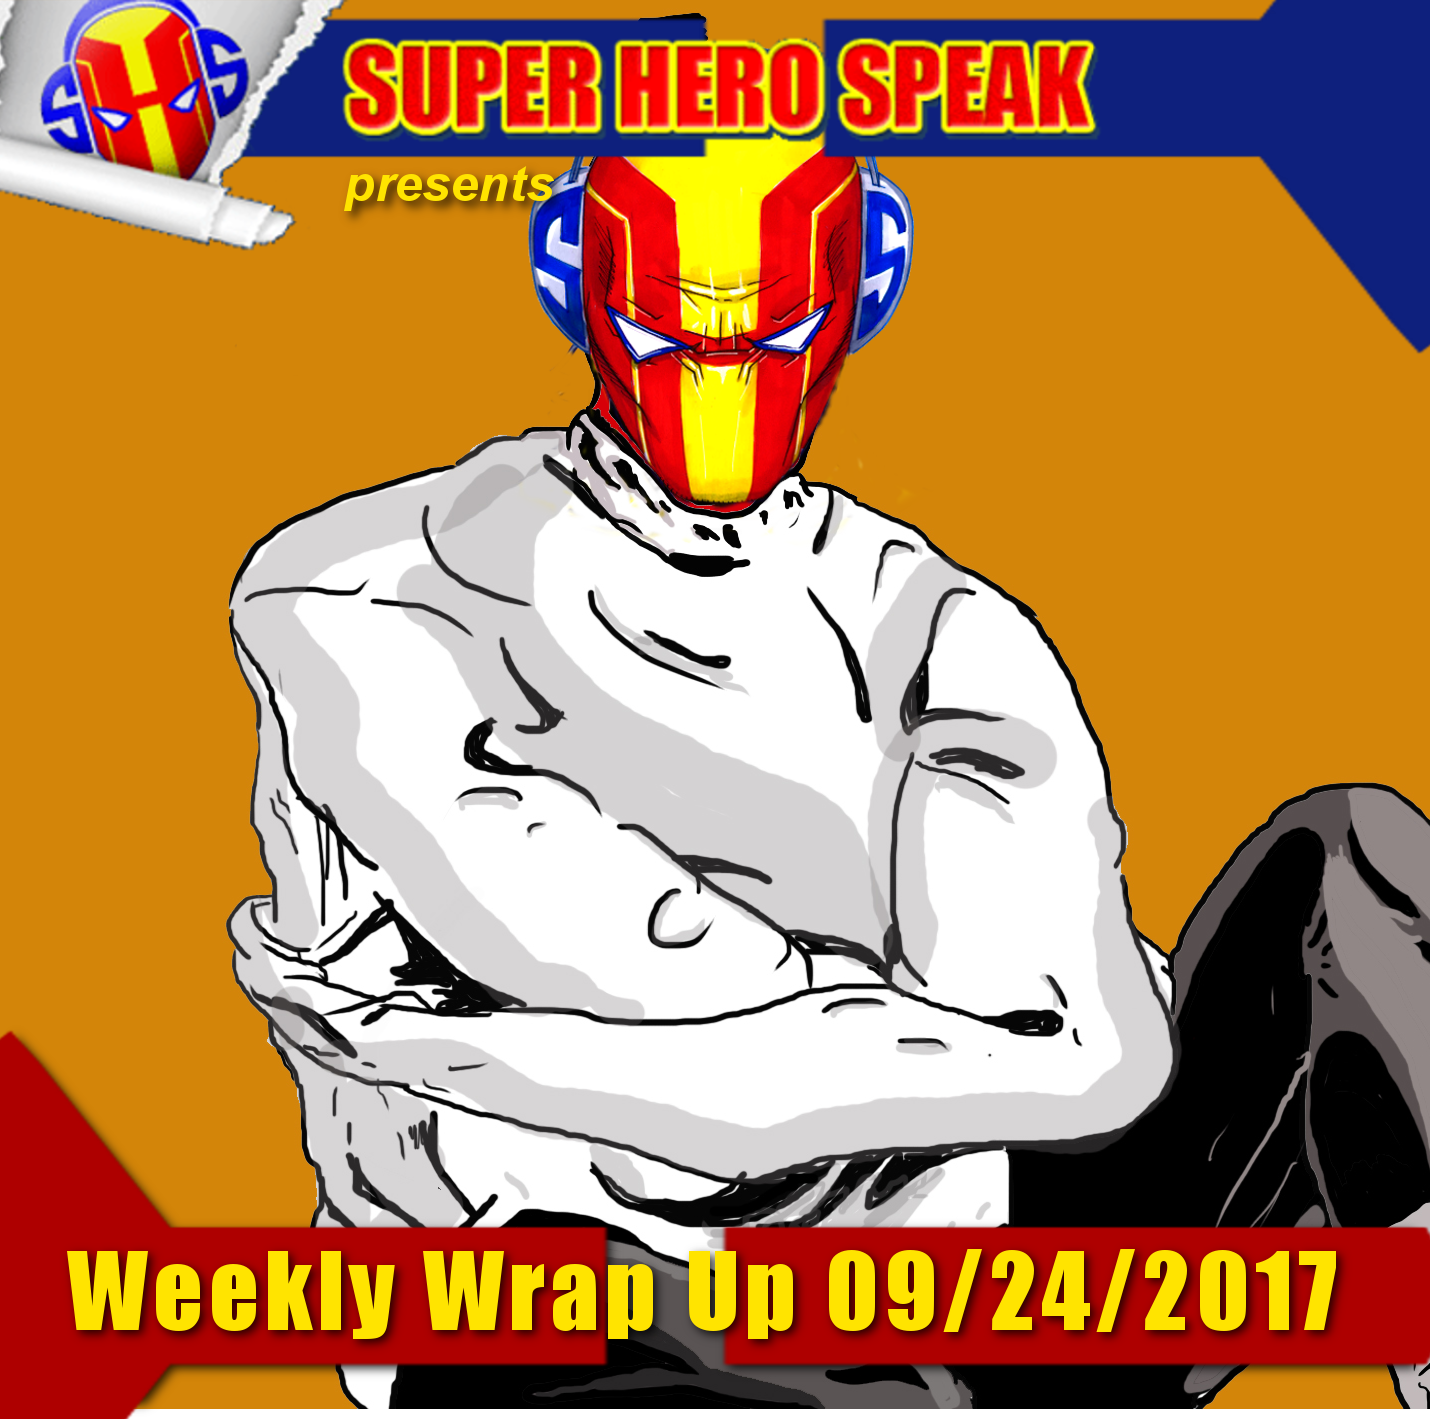 SHS Weekly Wrap Up 09/24/2017